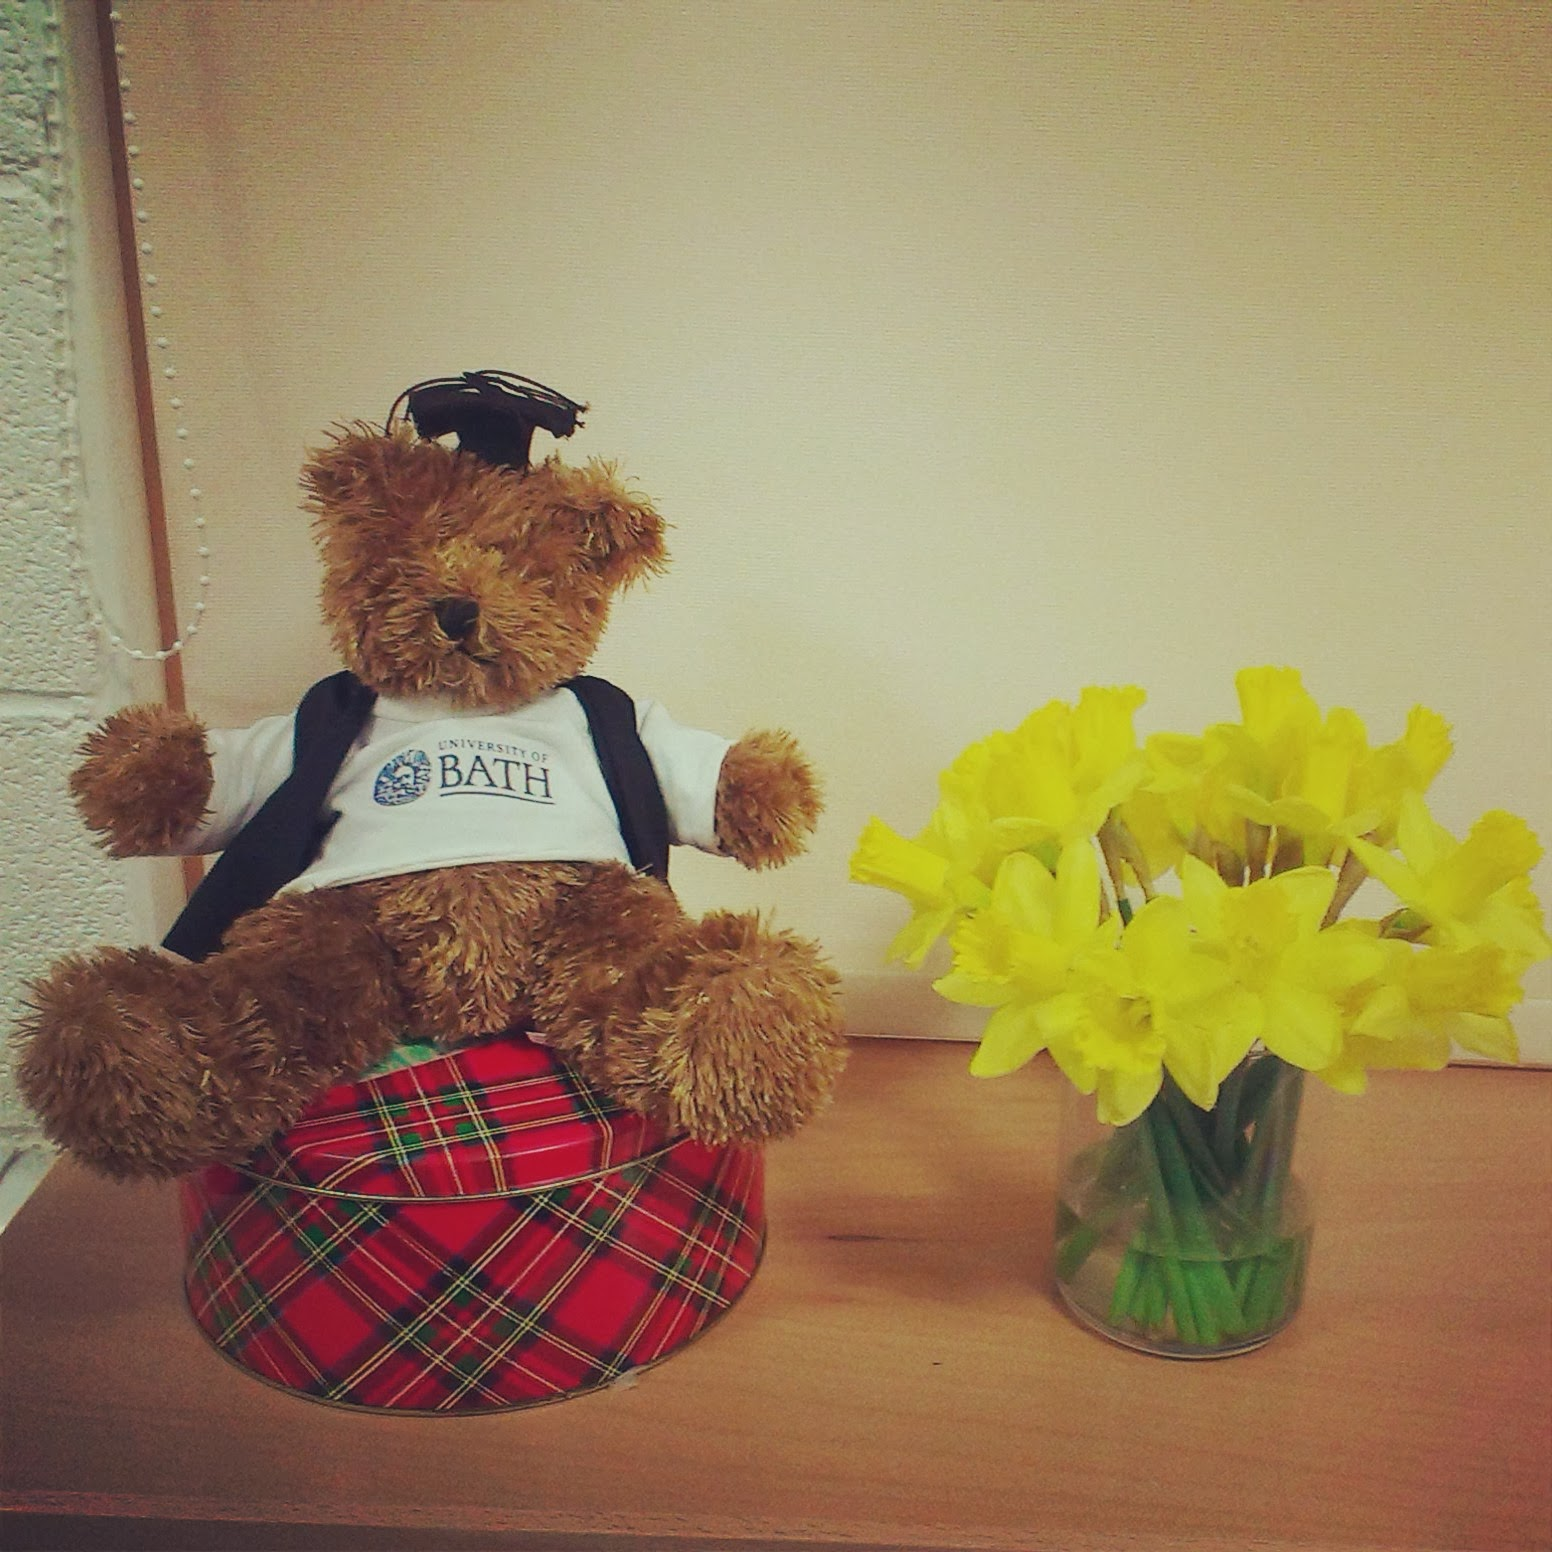 Daffodils in the office